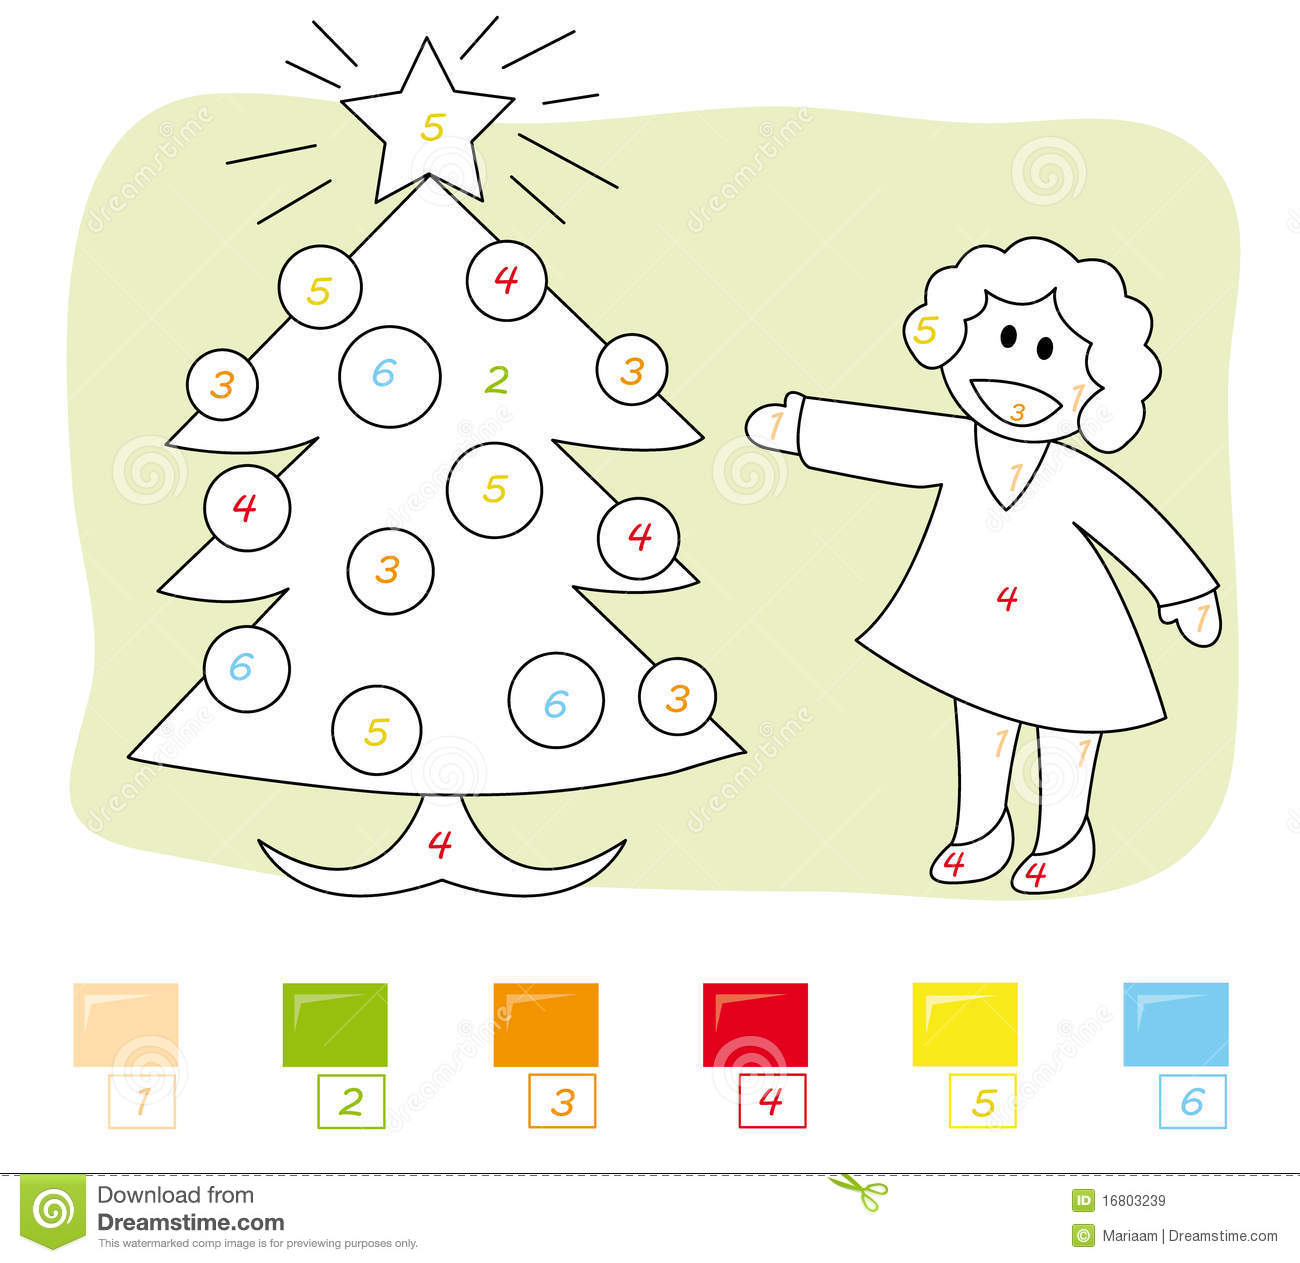 Christmas Color By Number Color by number game: